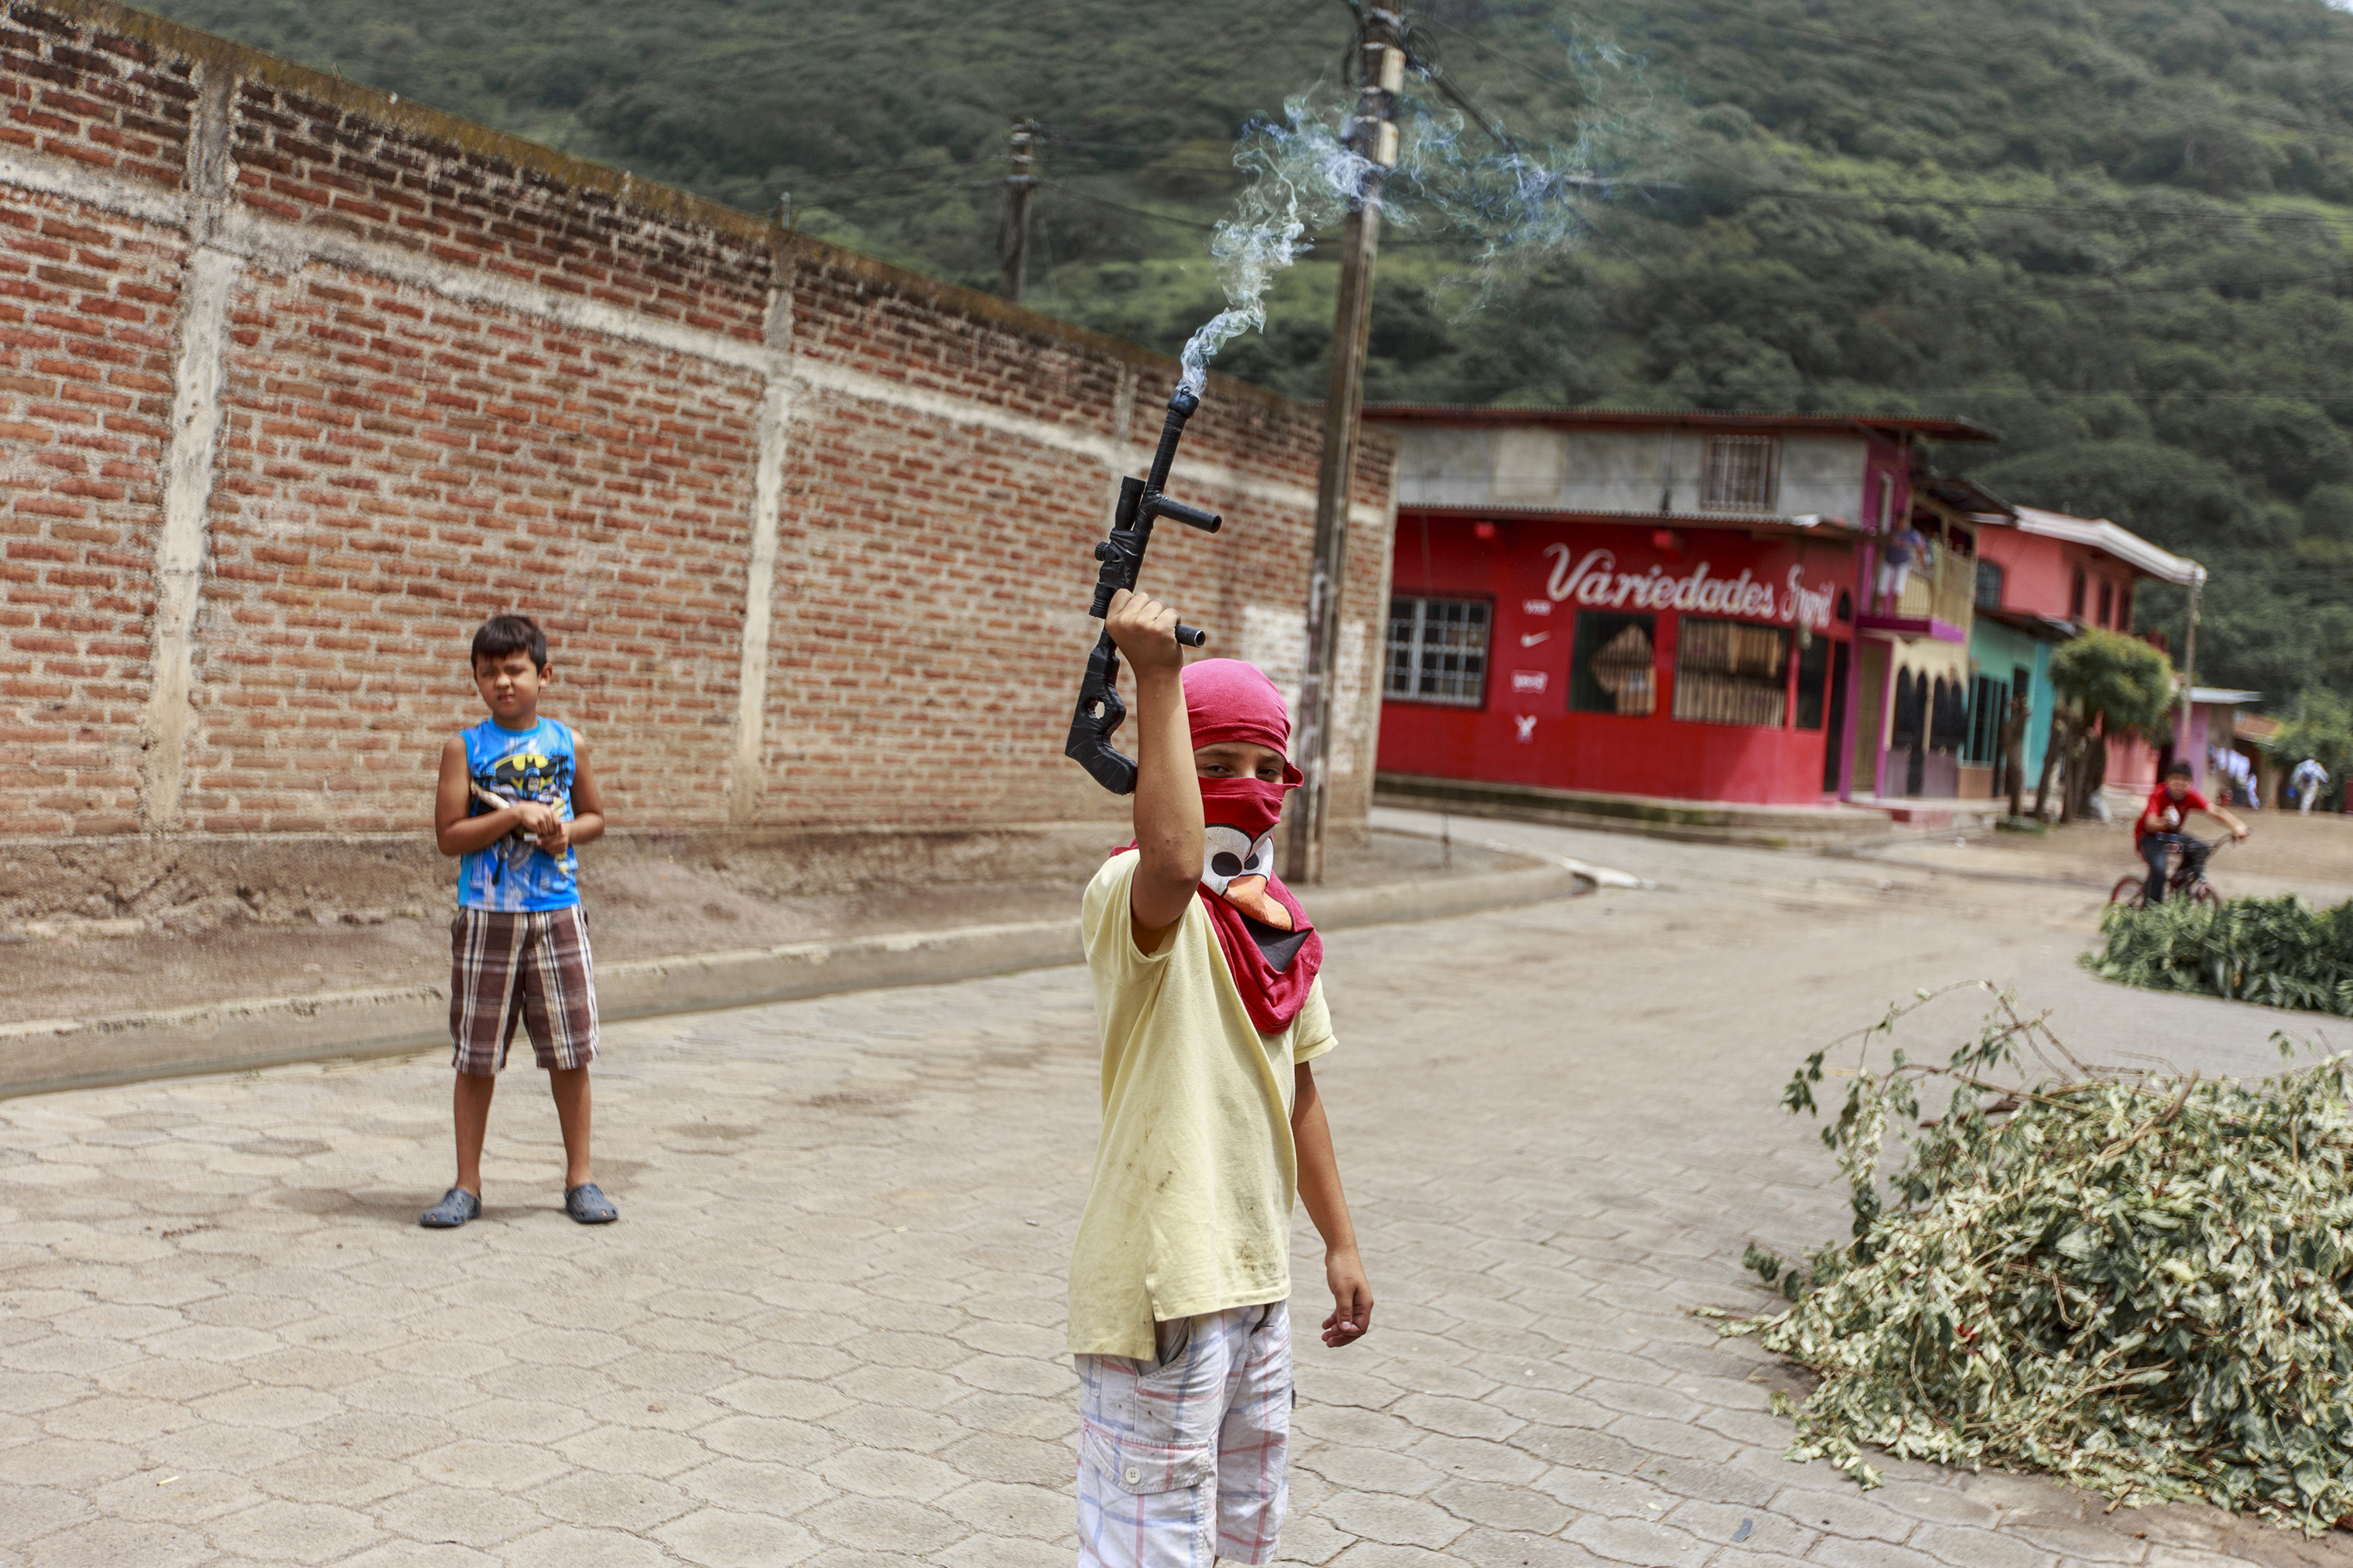 A child with a toy gun—fitted with a firework that emits smoke—pretend to guard a barricade in La Trinidad, a municipality north of Managua, on June 28.